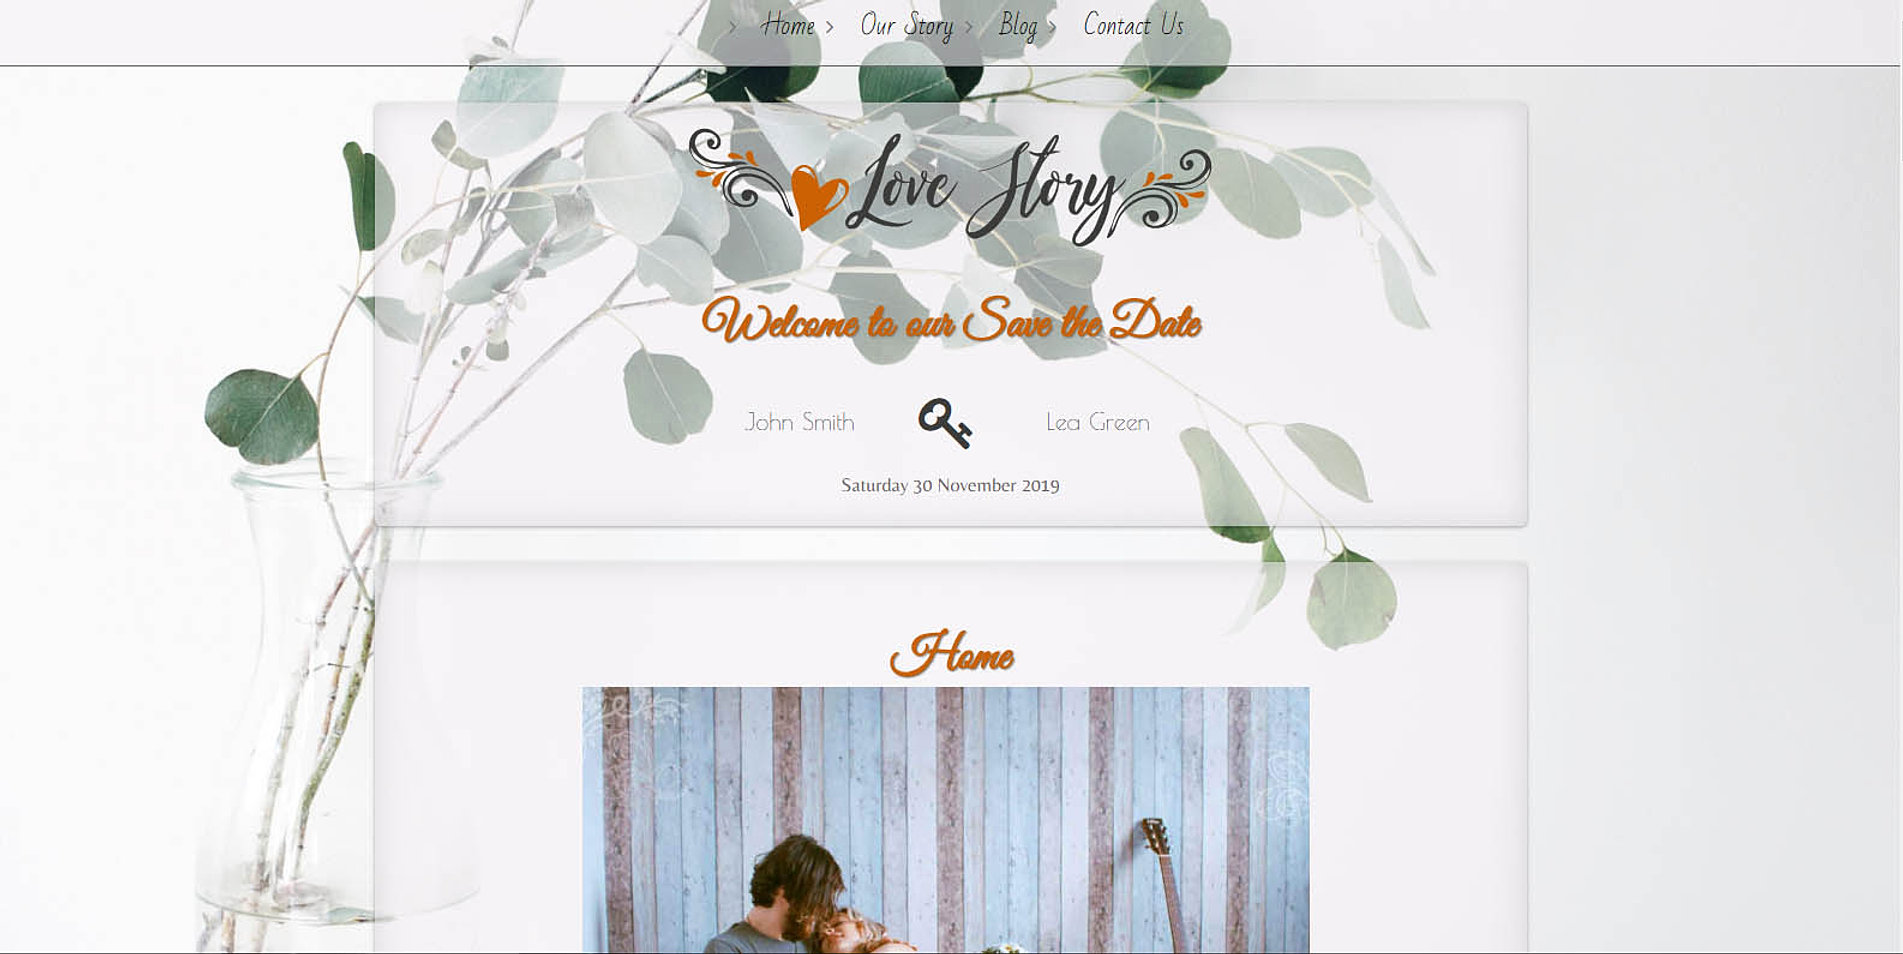 Online Wedding Invitations | South Africa | My Wedding Online